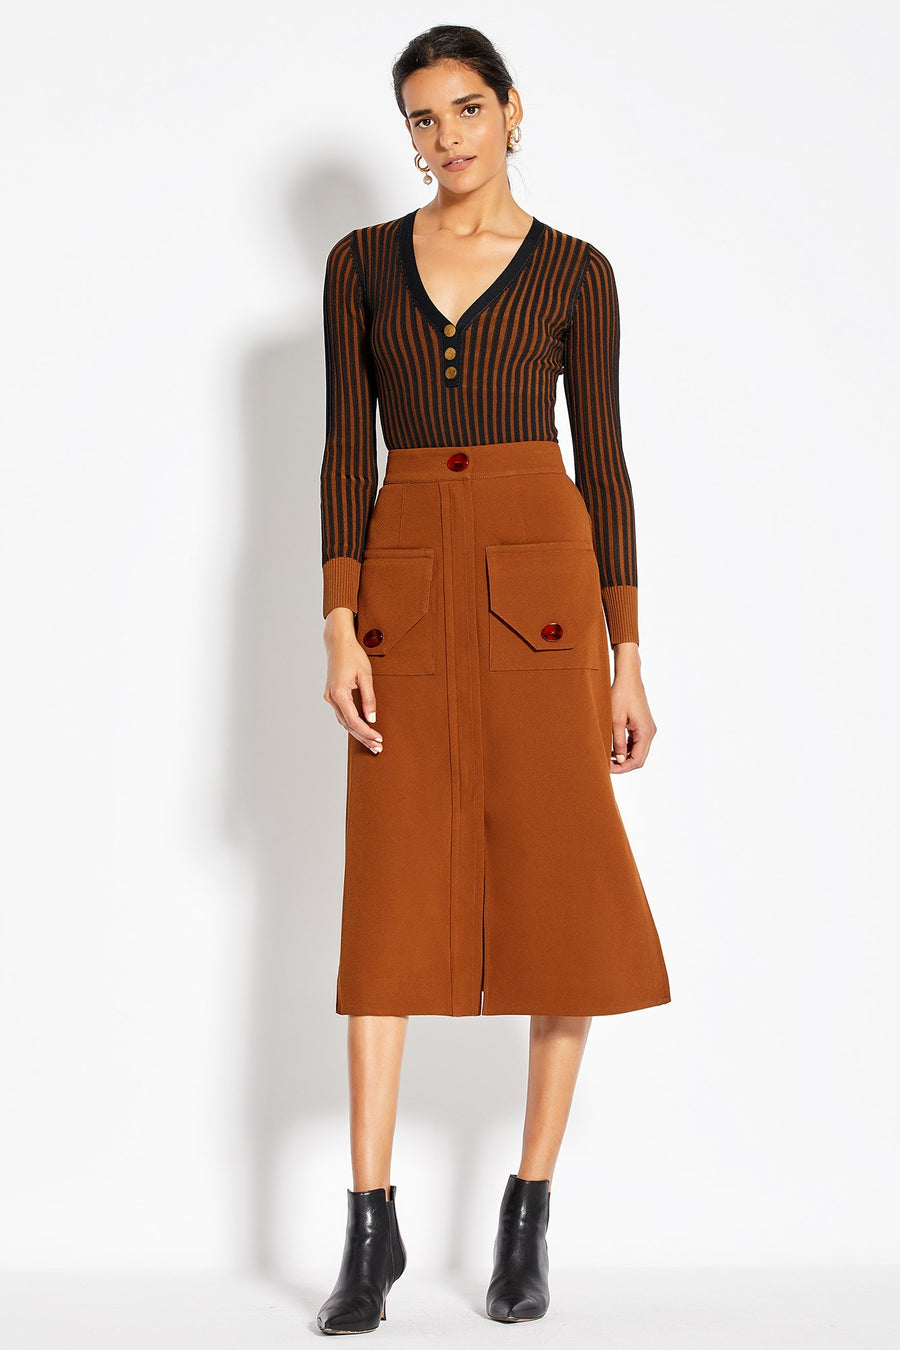 Cargo Skirt - Walnut